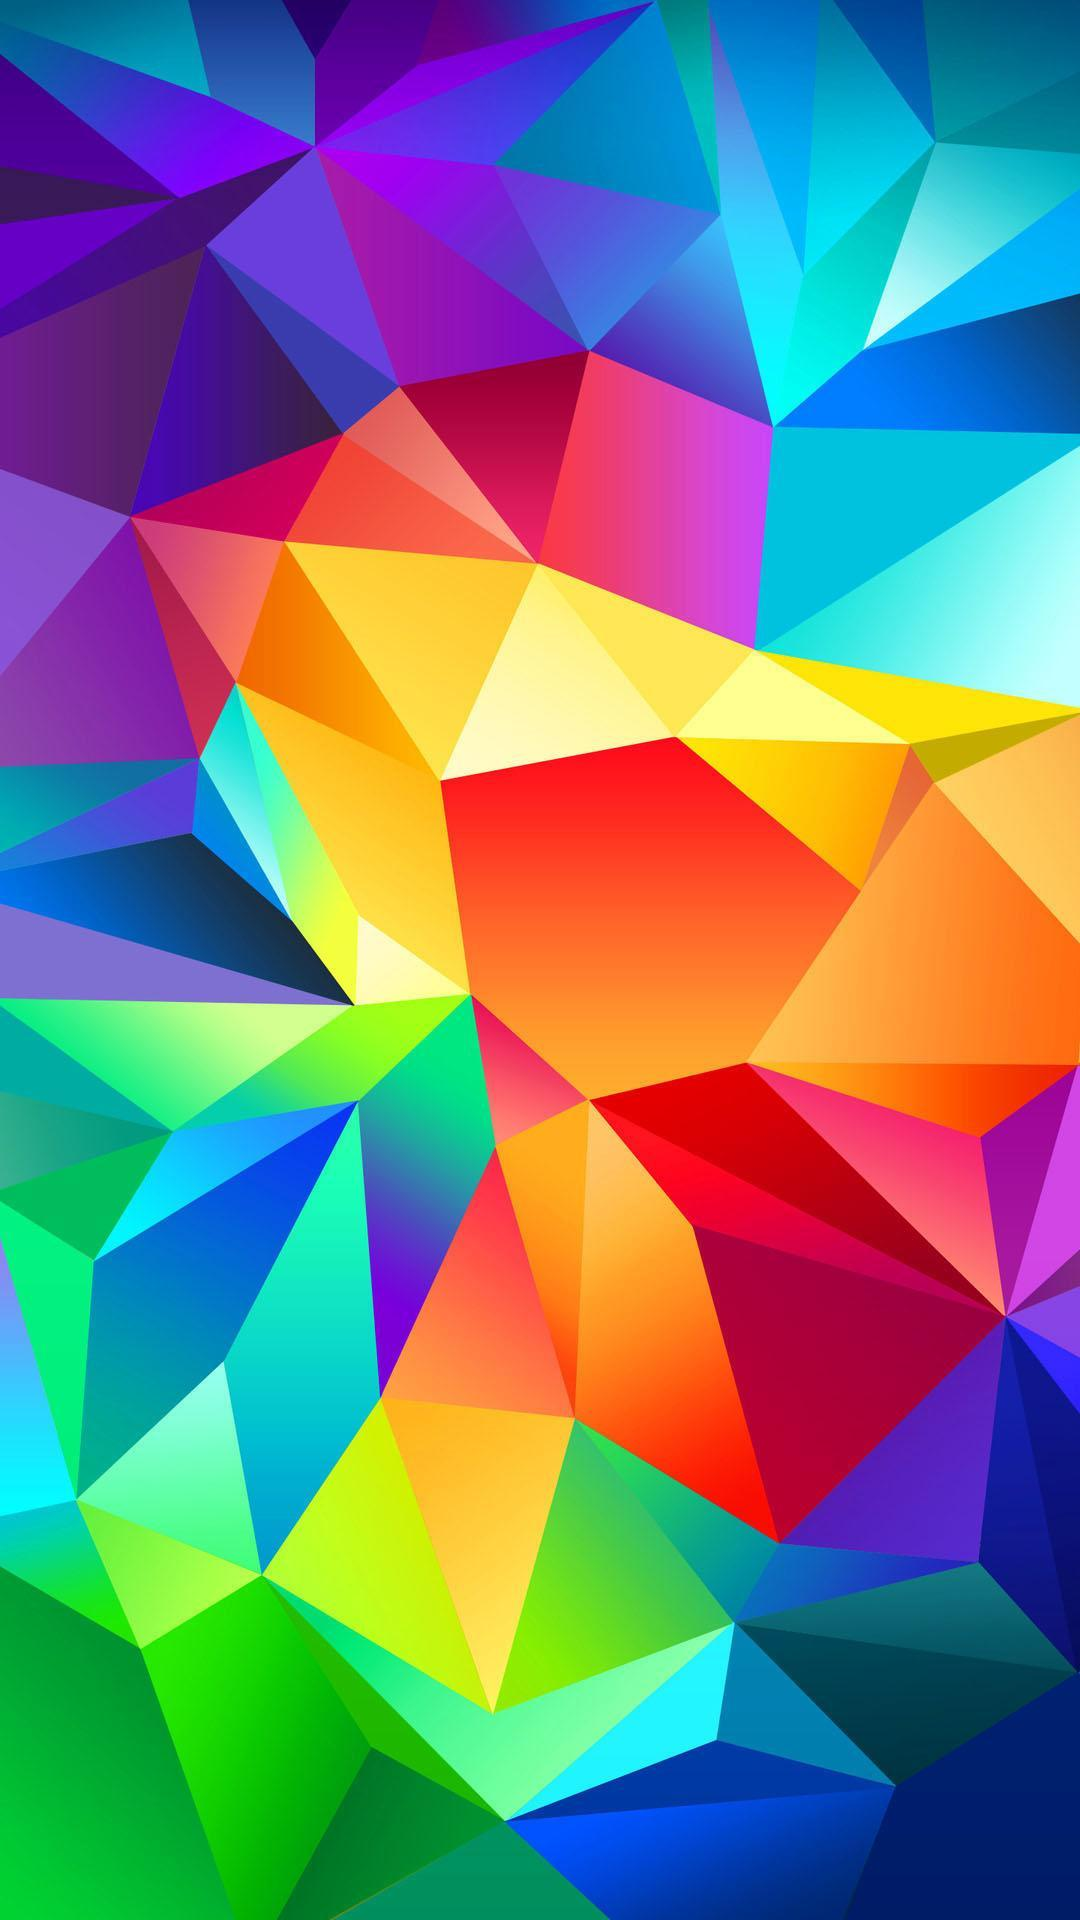 Colorful Wallpaper 4k Ultra Hd For Android Apk Download